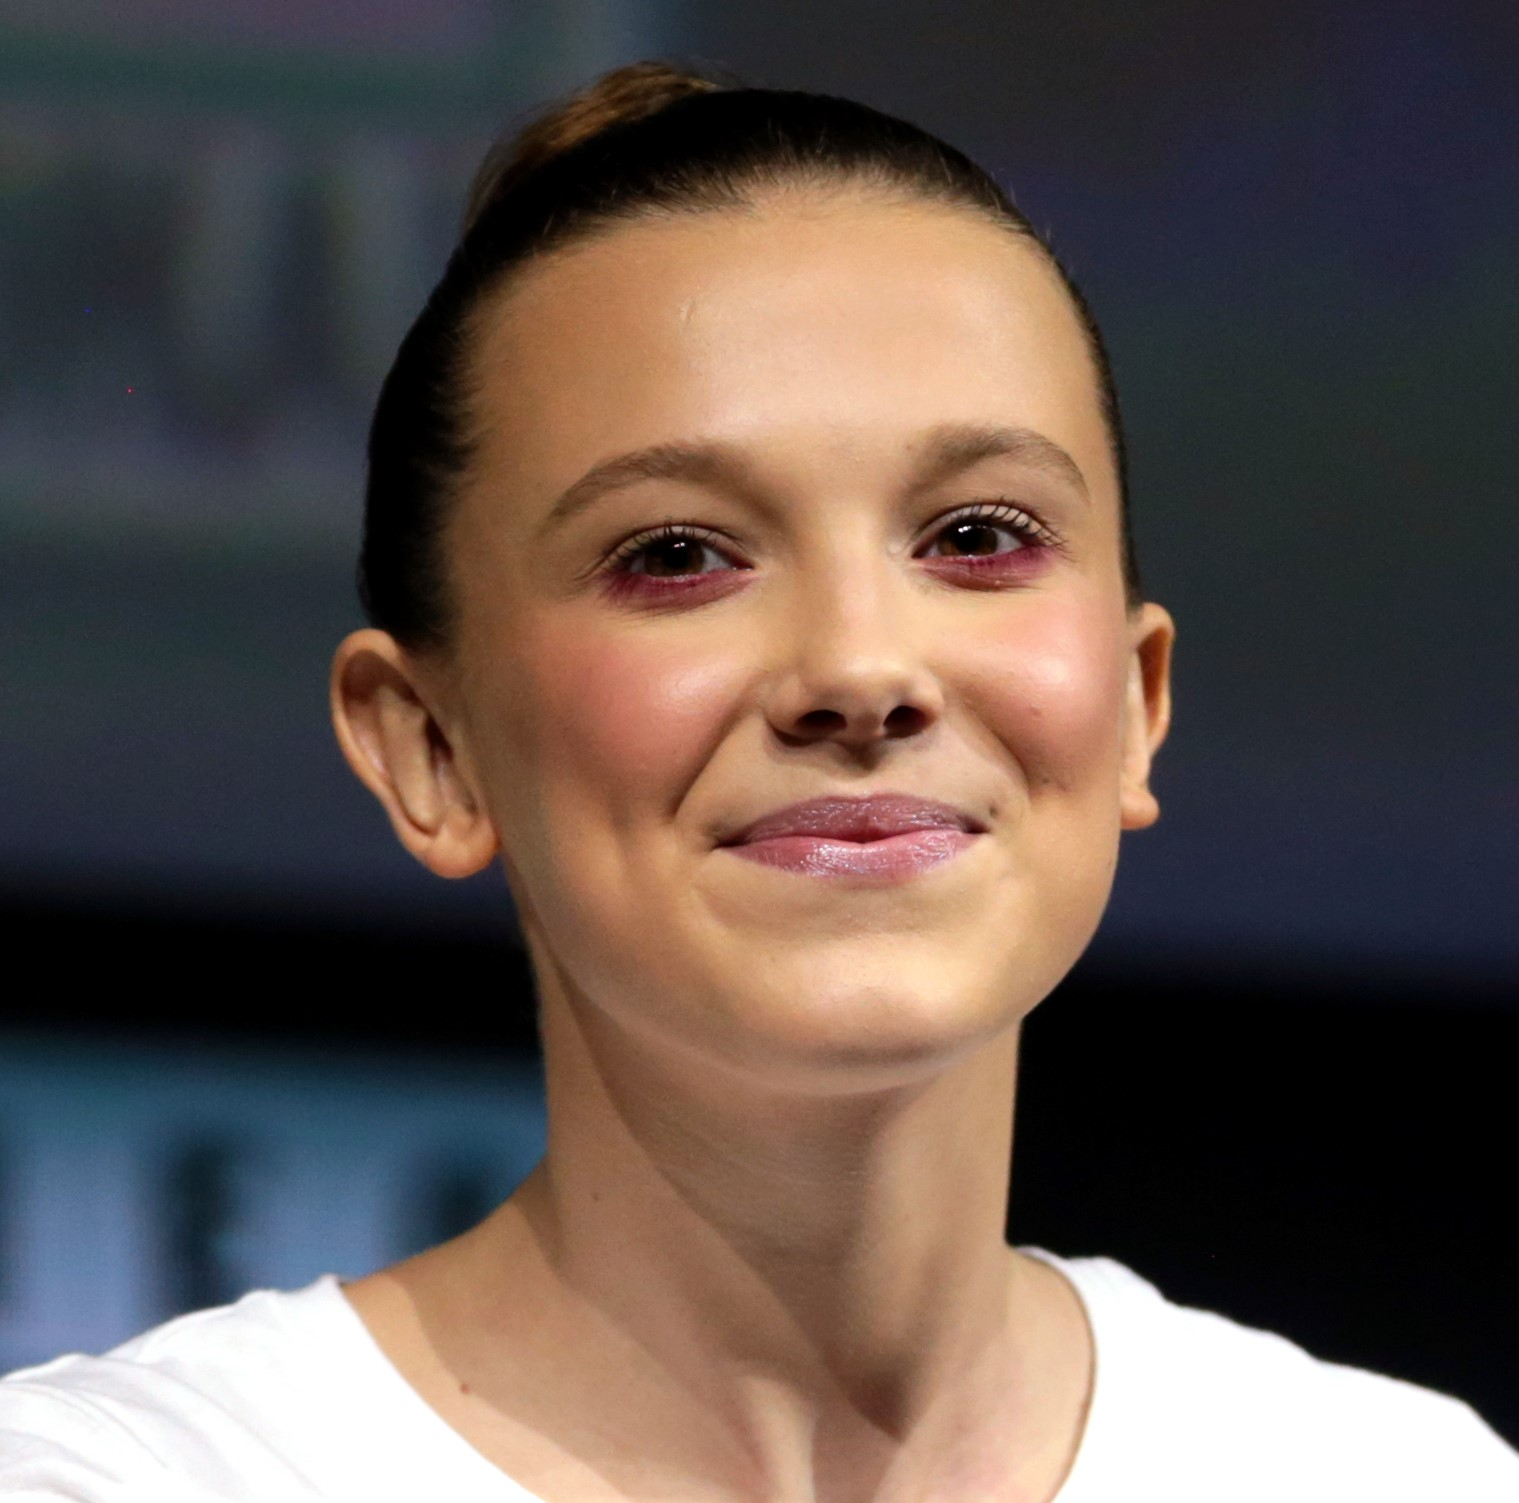 Millie Bobby Brown - Wikipedia